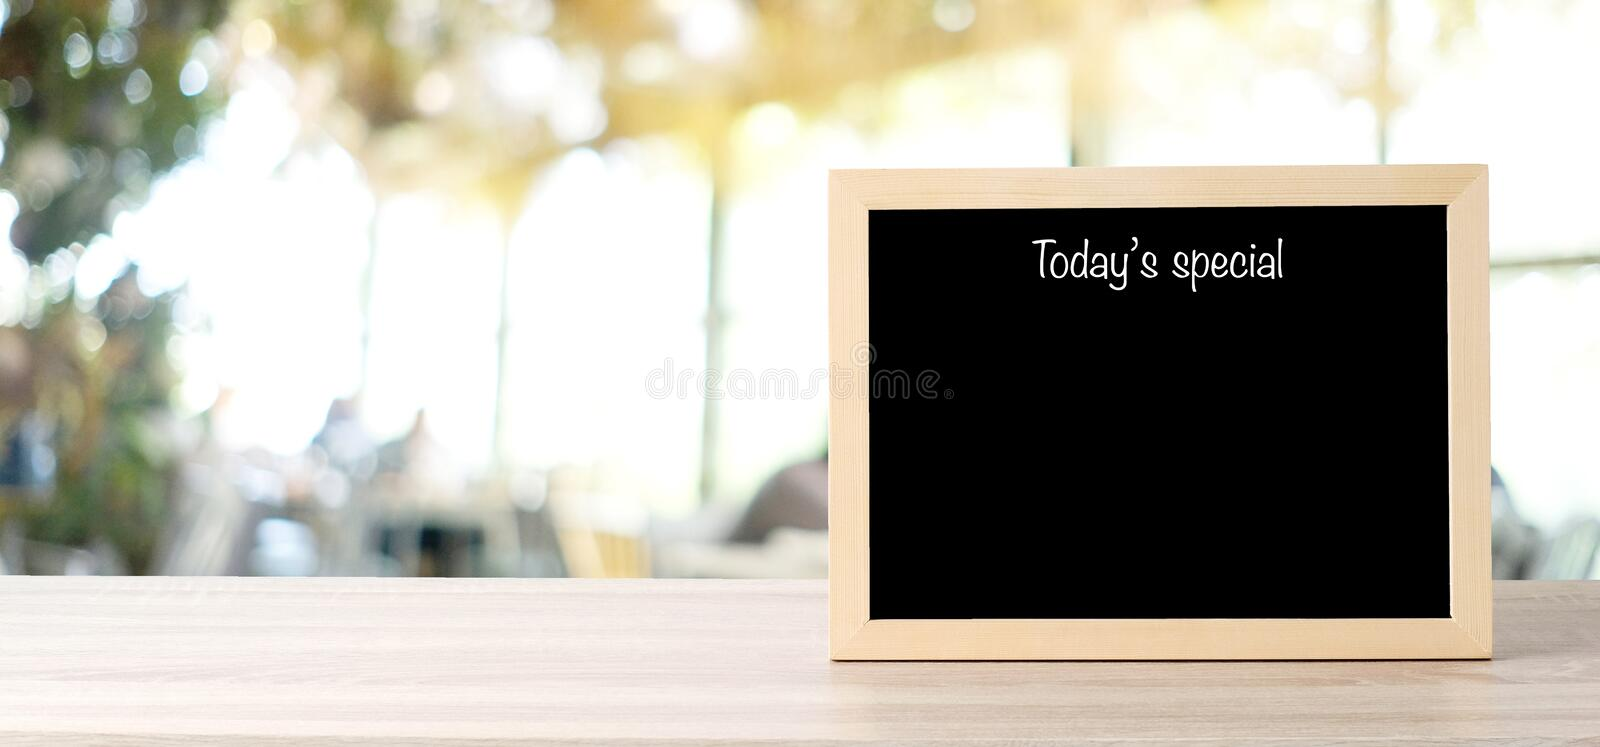 Today's special menu blackboard, sign board, on table at  blur coffee shop, restaurant, with people background, Blank chalkboard stock images